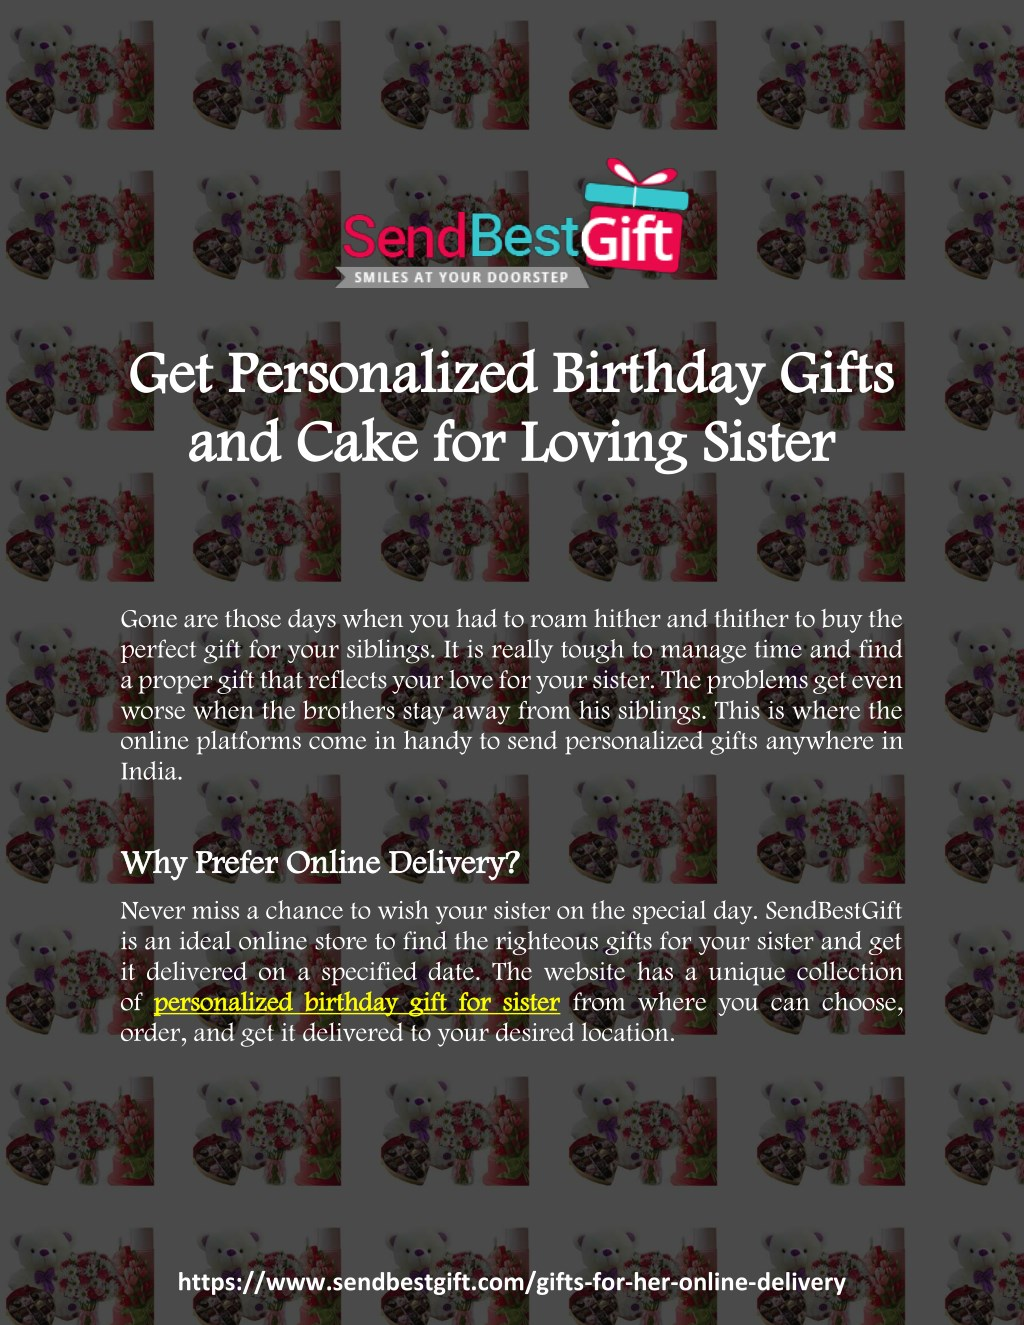 Get Personalized Birthday Gifts And Cake For Loving Sister